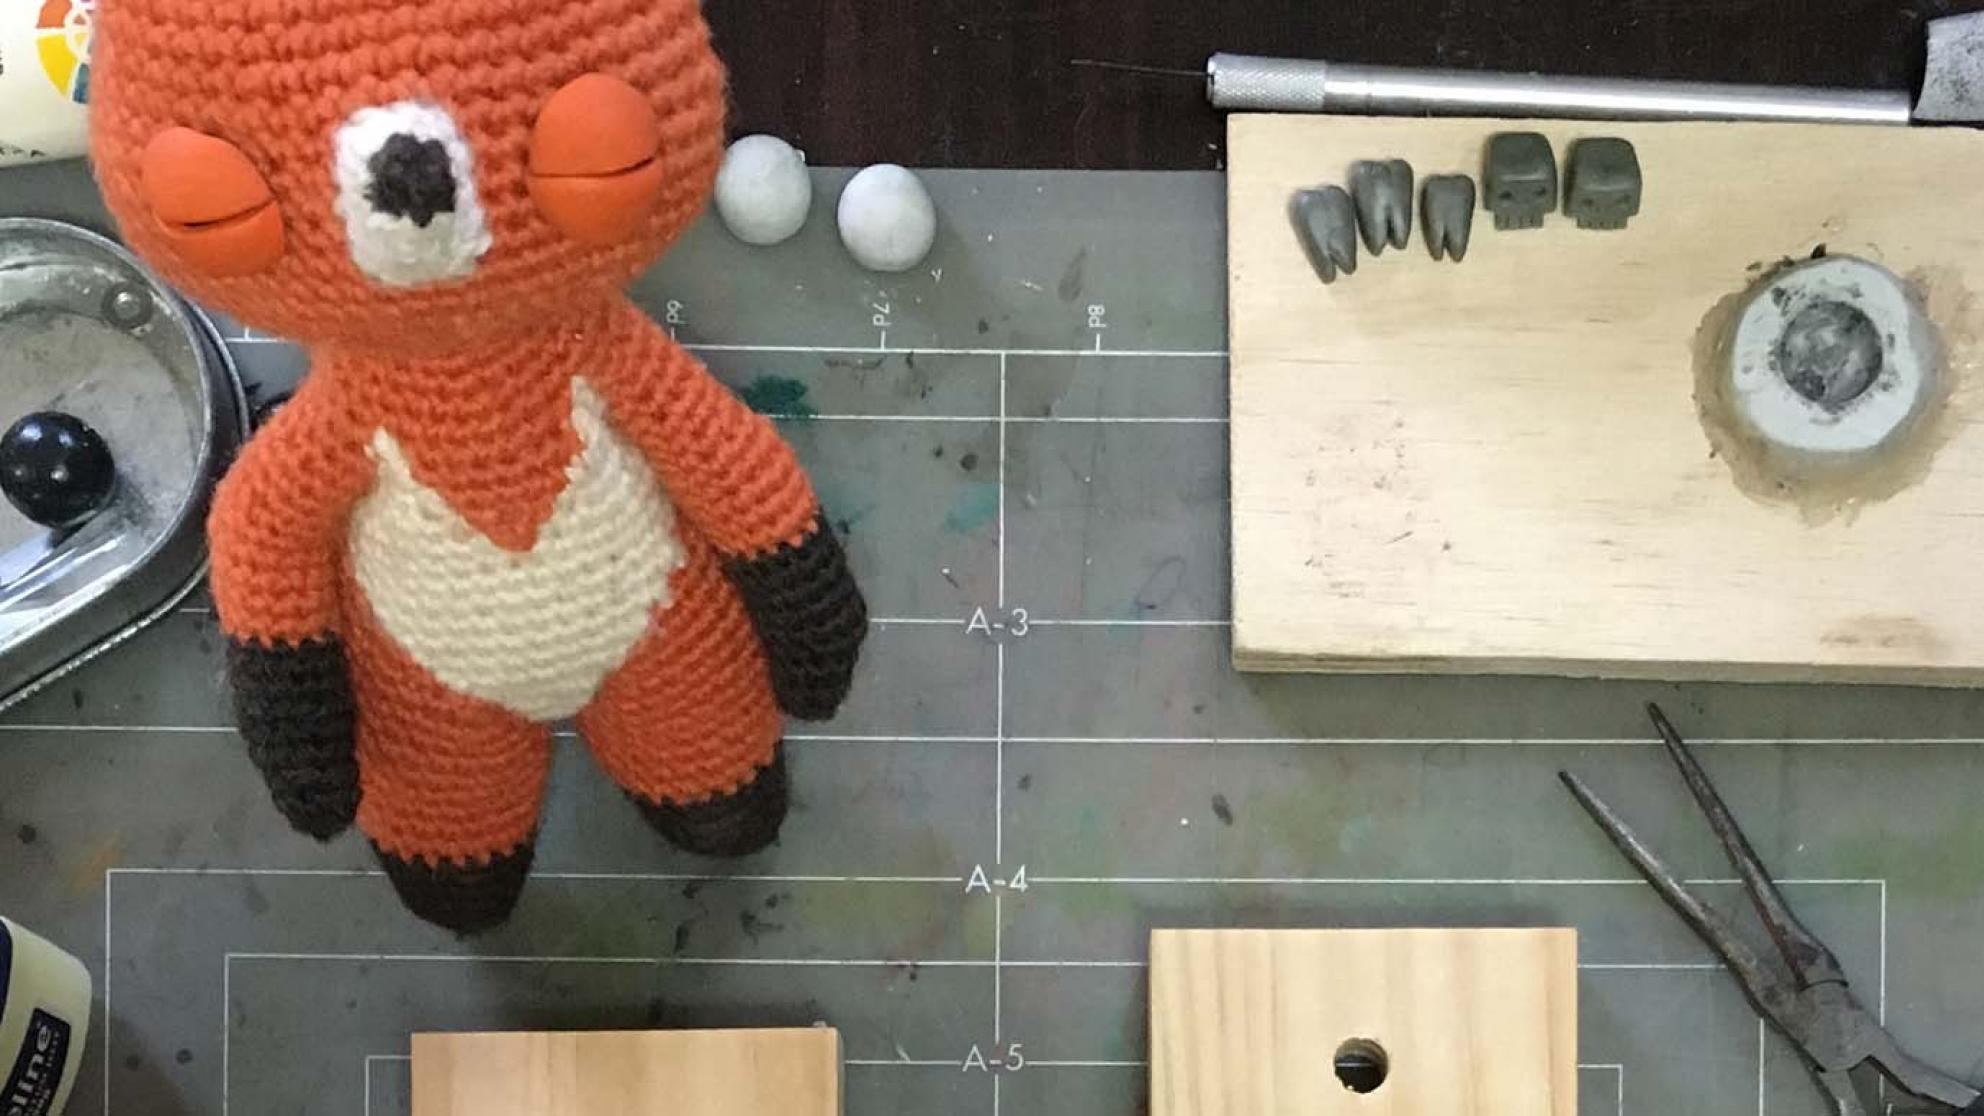 A crocheted animal created for an animated film sits on a workbench awaiting completion